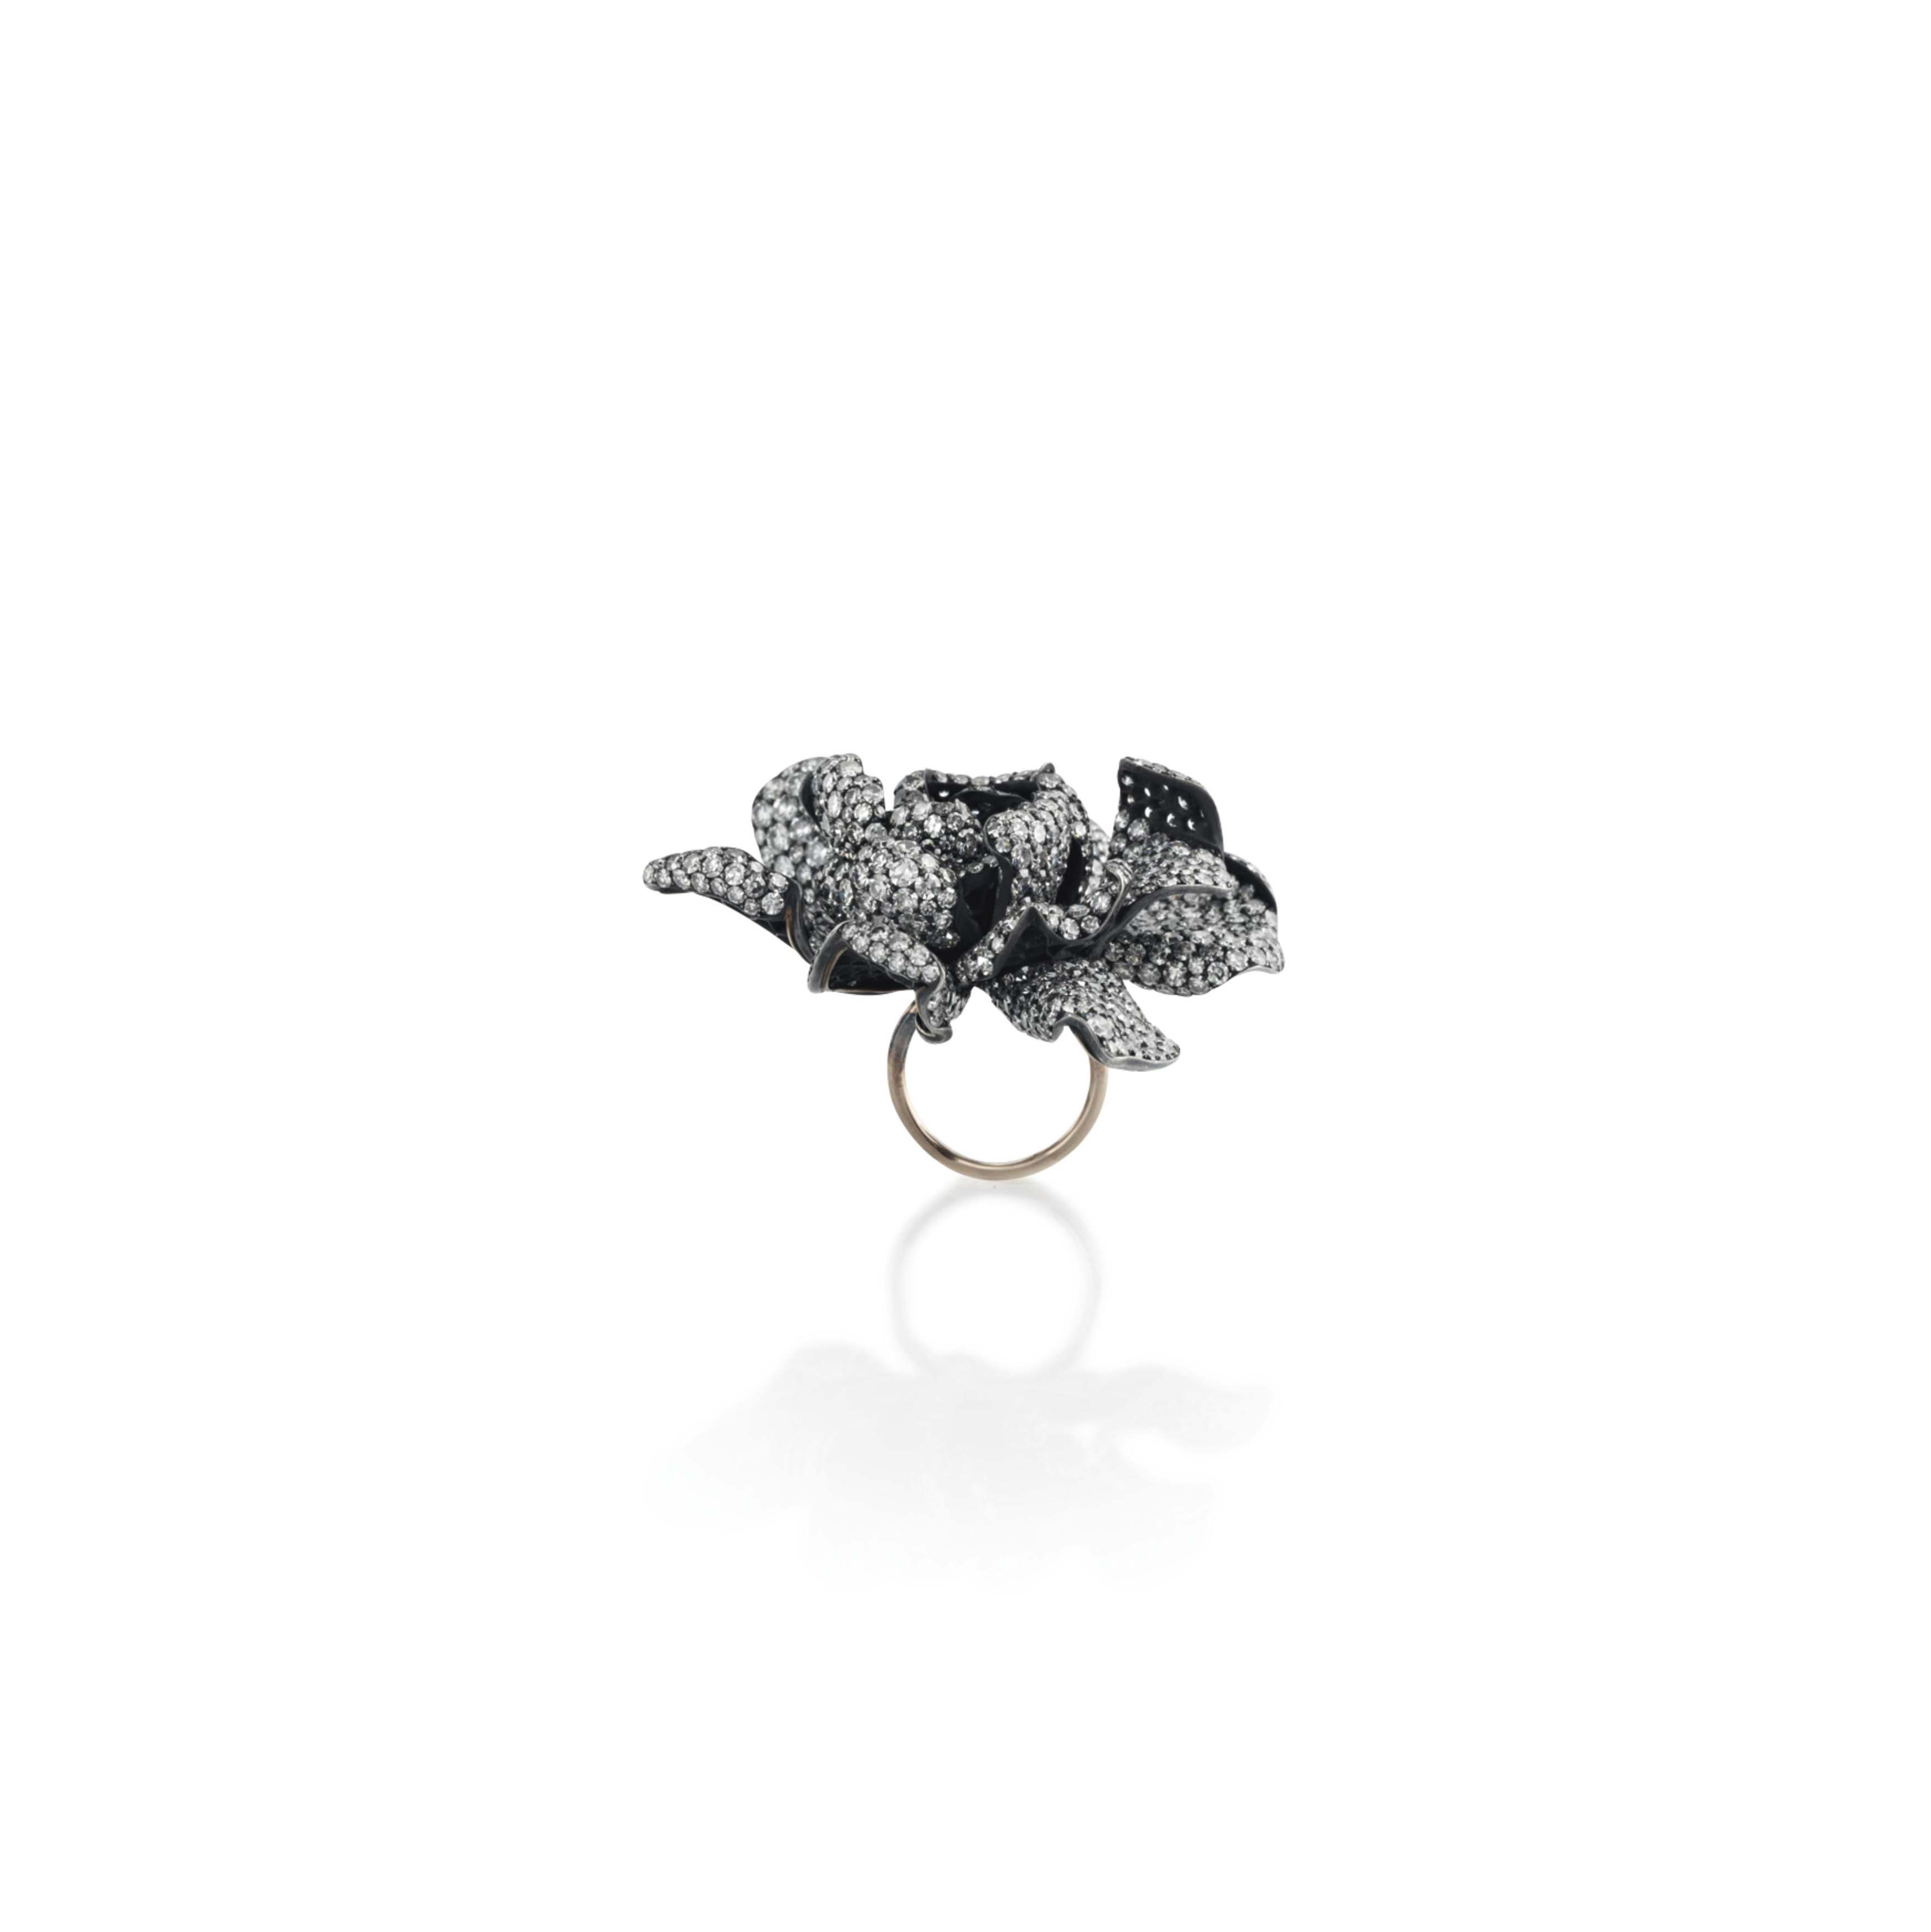 A DIAMOND 'GARDENIA' RING, BY JAR